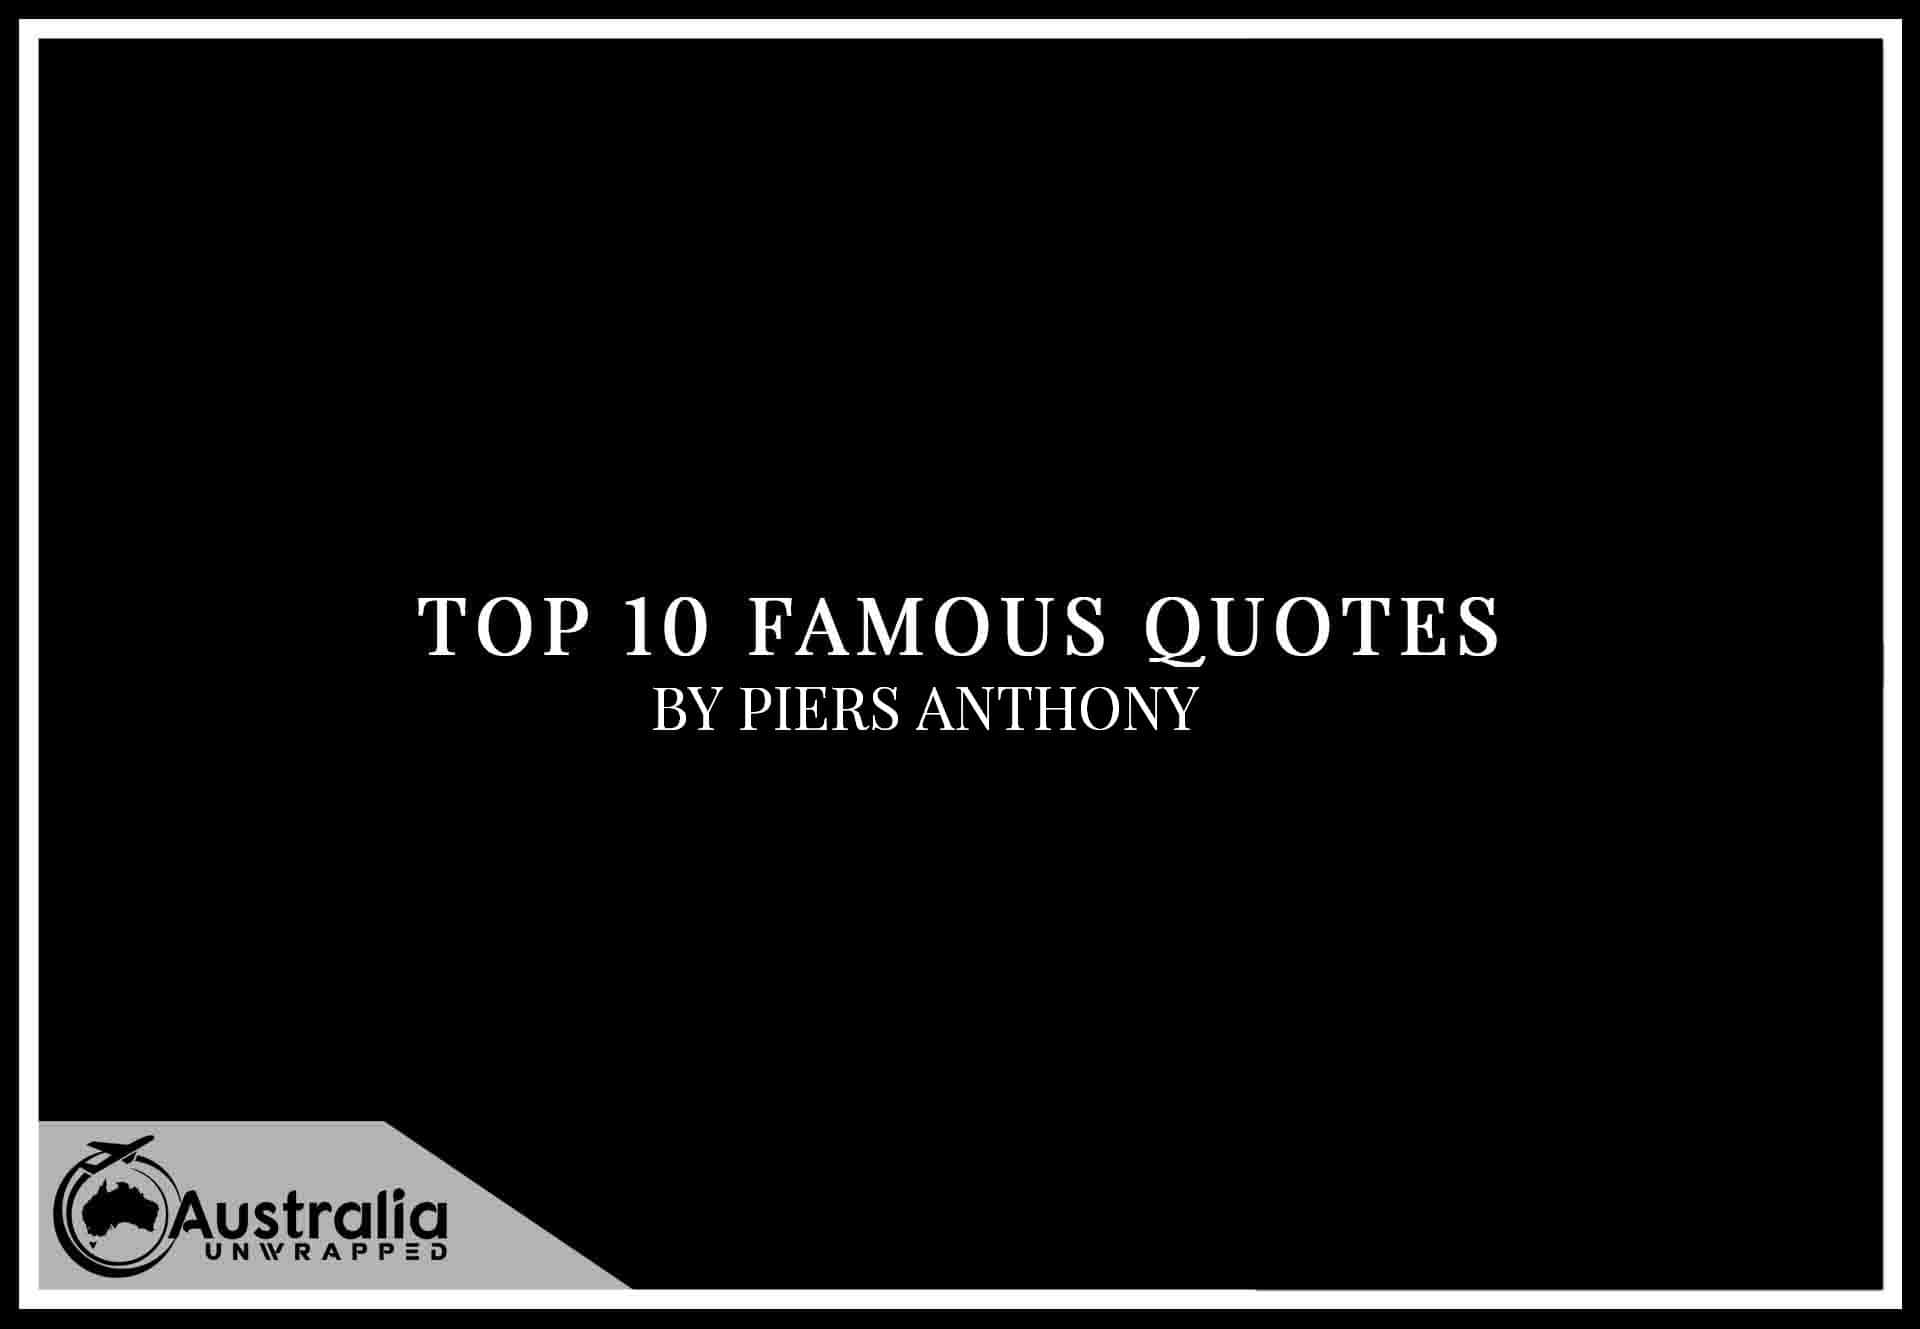 Top 10 Famous Quotes by Author Piers Anthony